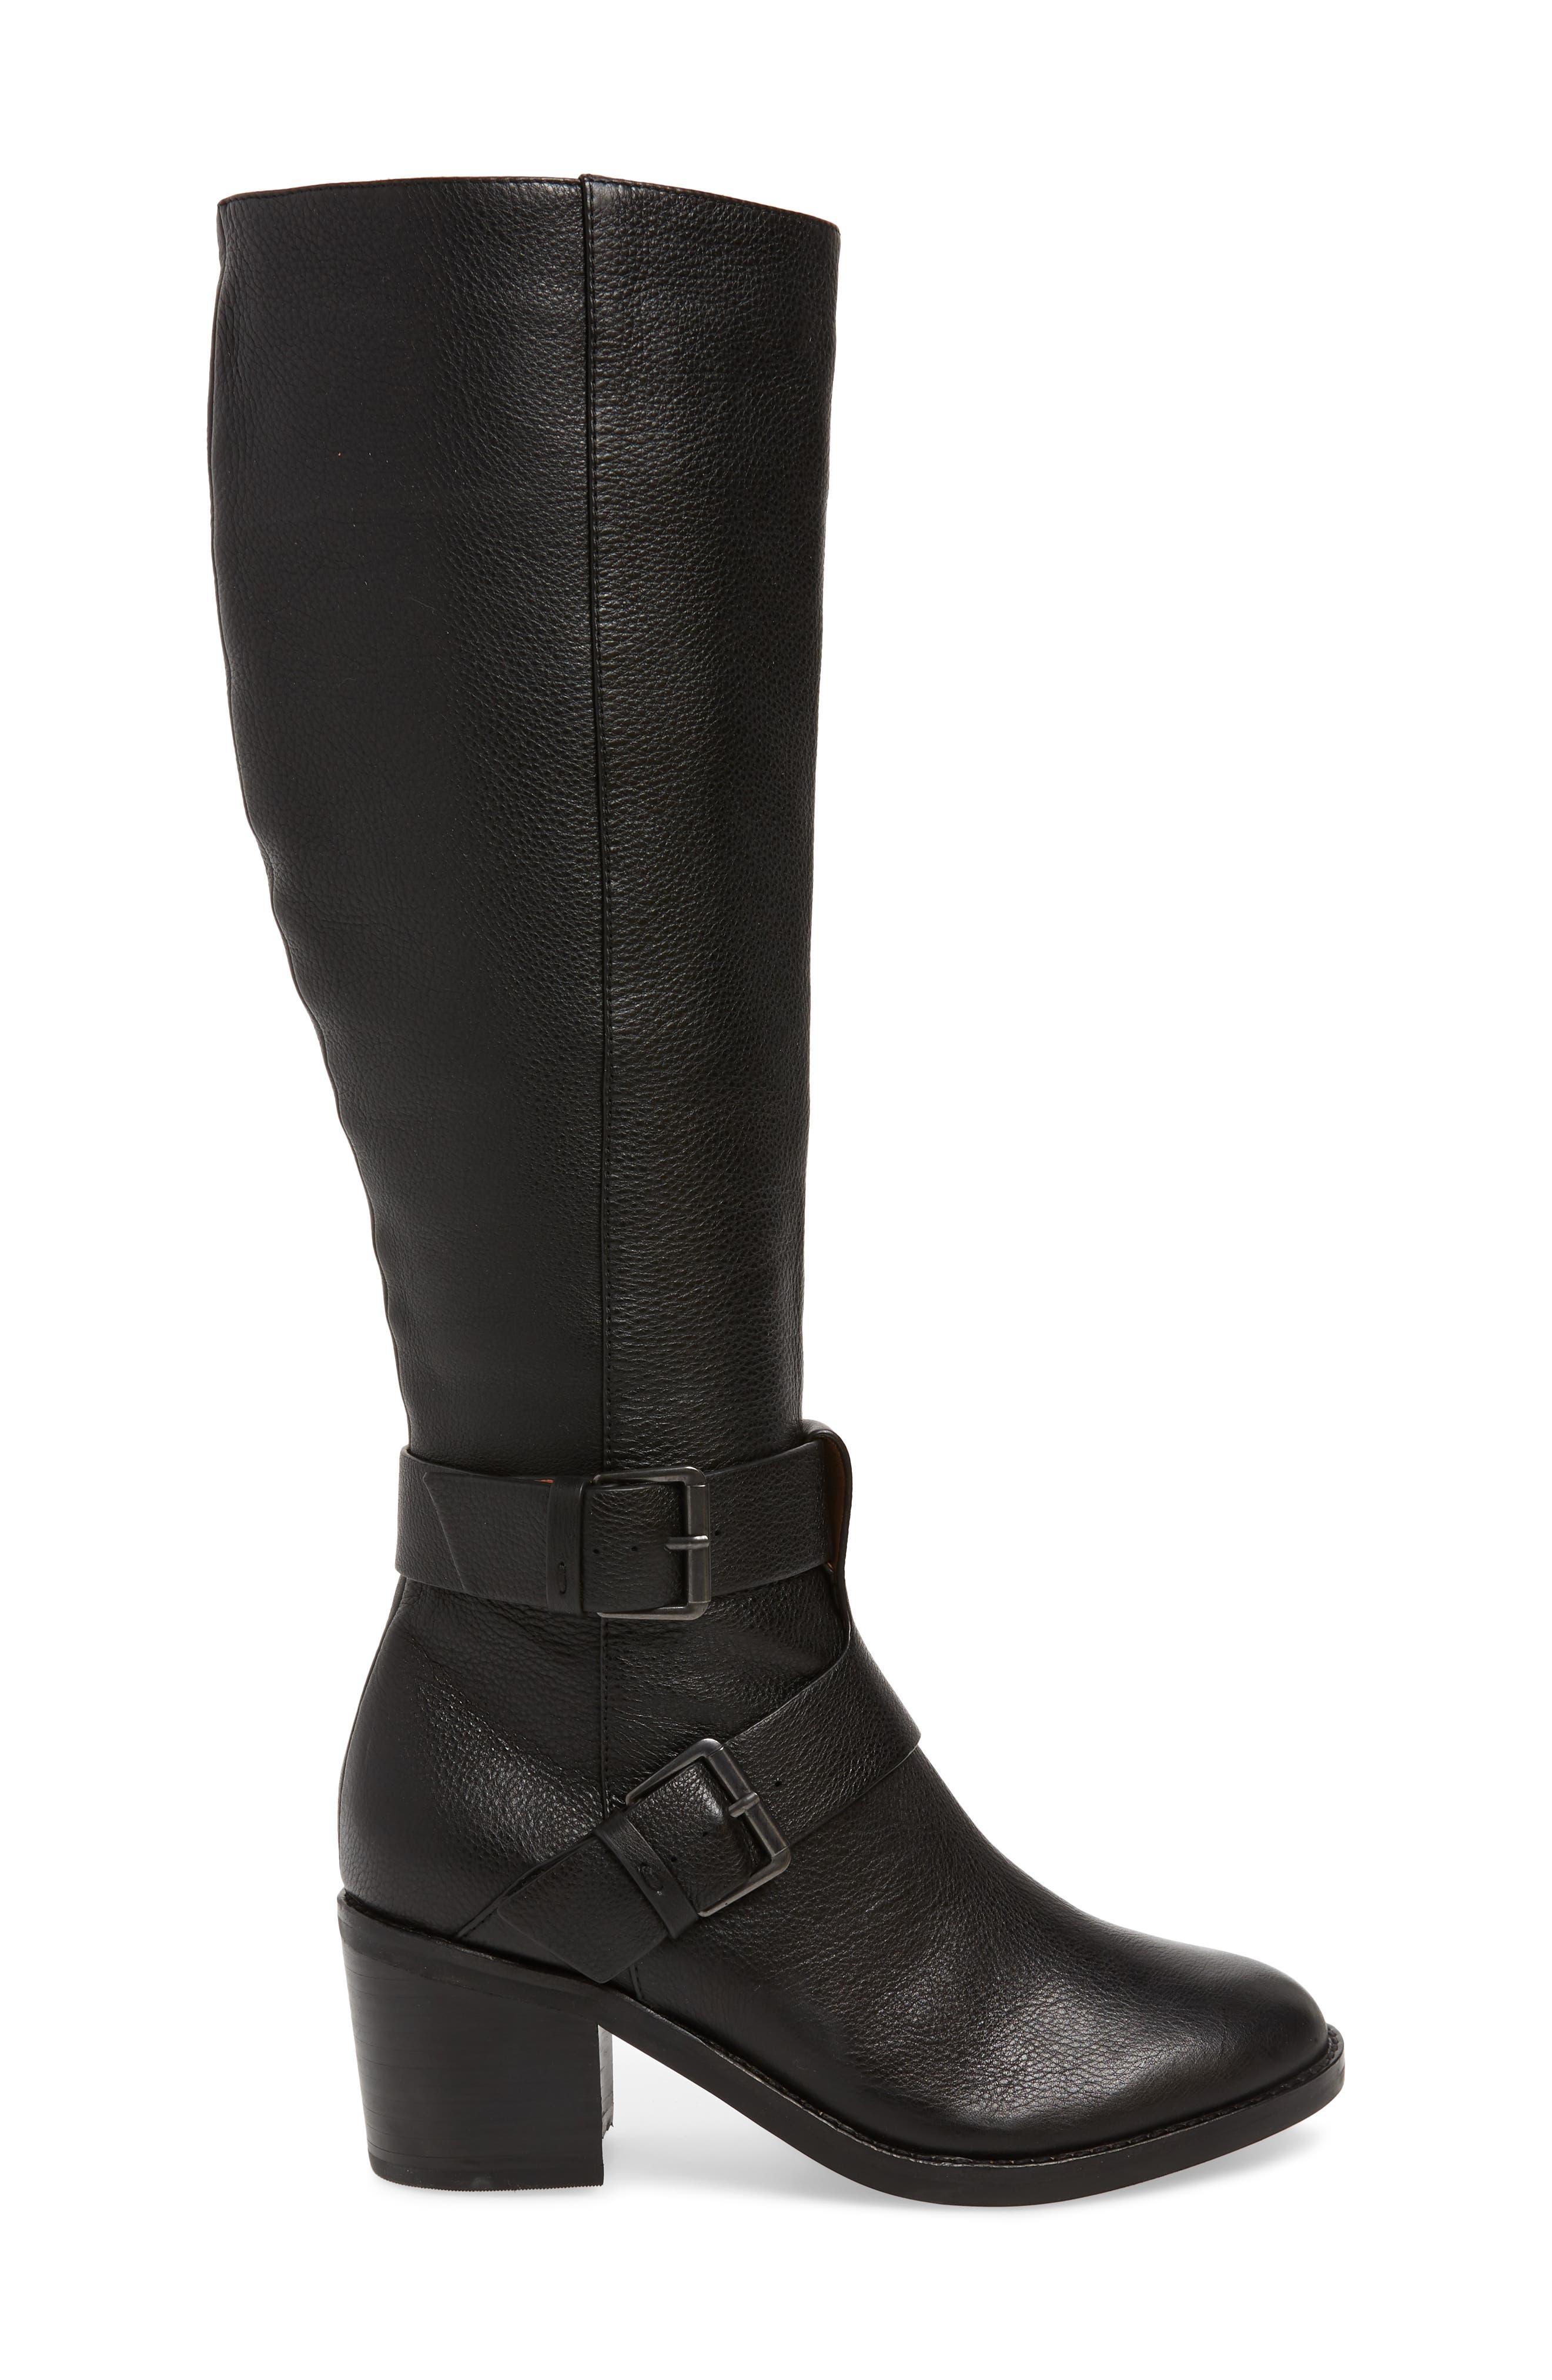 GENTLE SOULS BY KENNETH COLE, Verona Knee-High Riding Boot, Alternate thumbnail 3, color, 001